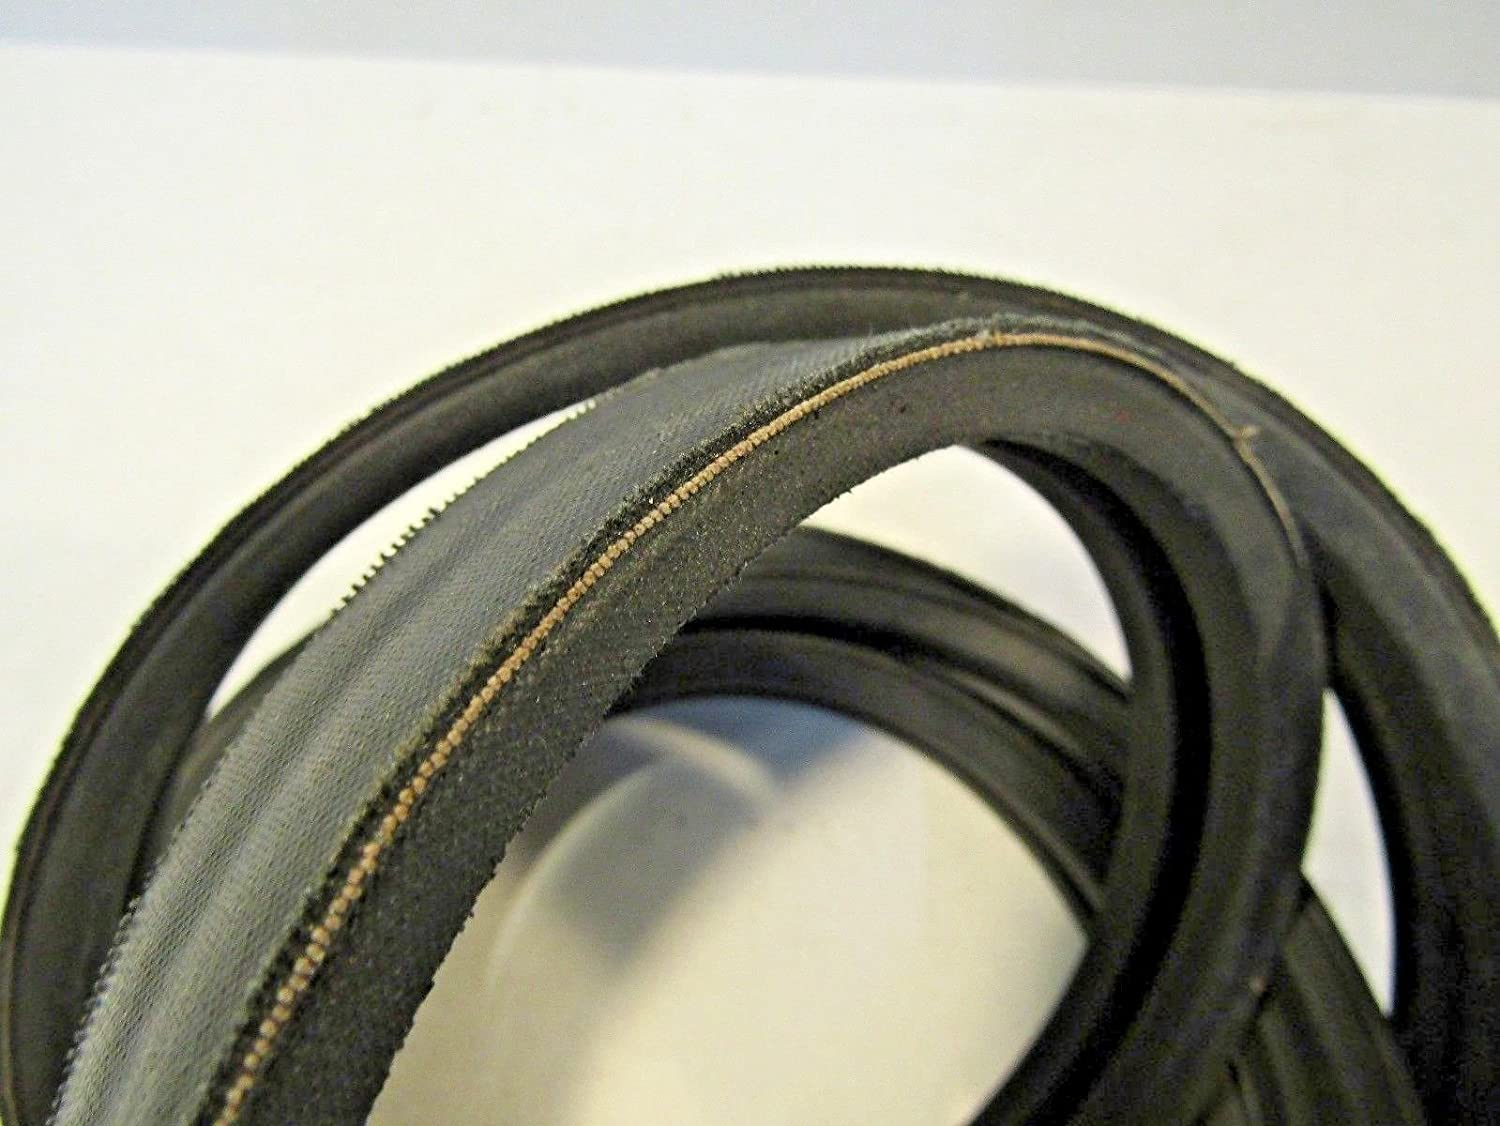 ARAMID OEM SPEC REPL BELT KUBOTA 66021-25080 6602125080 SET OF 2 BELTS G3200 G42